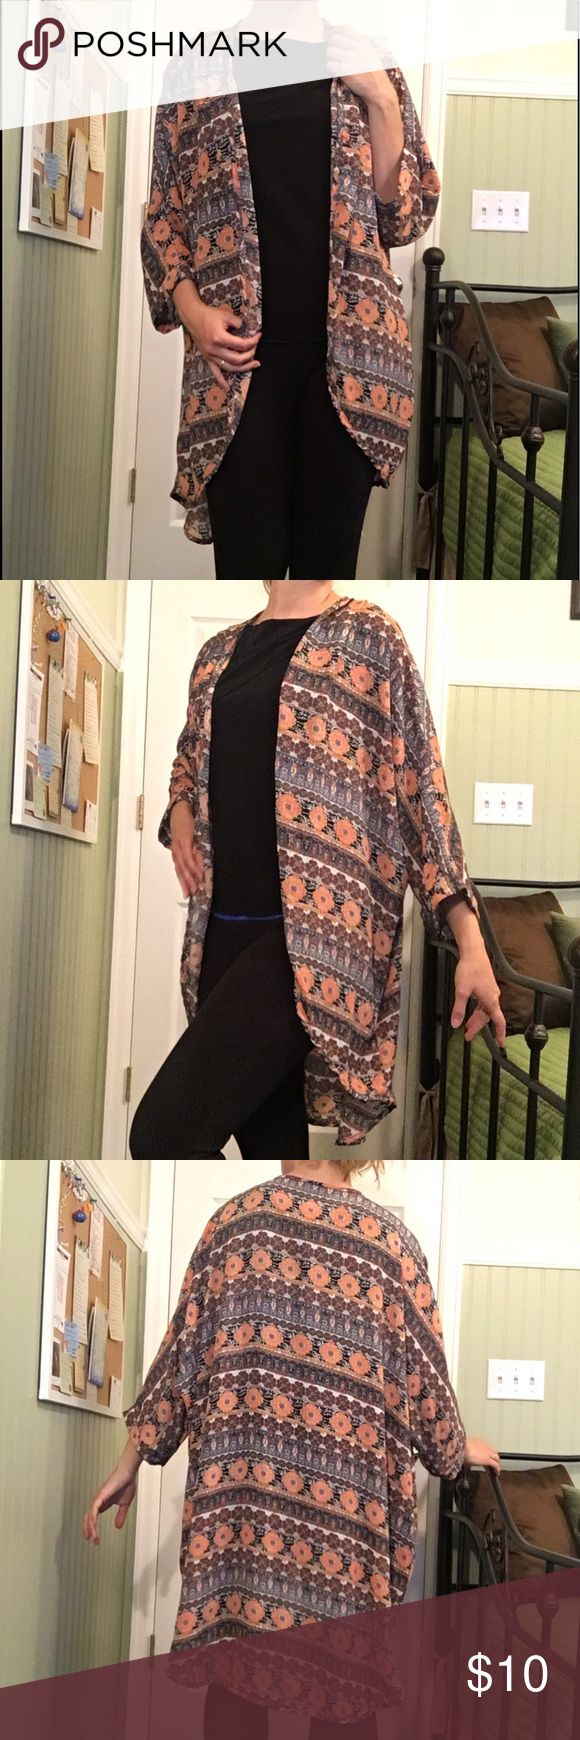 """Pretty Detailed Kimono Re-Posh! This would be perfect for Summer and Spring! The back falls around 30"""" and the sleeves are batwing and 3/4 length. Body Central Sweaters"""